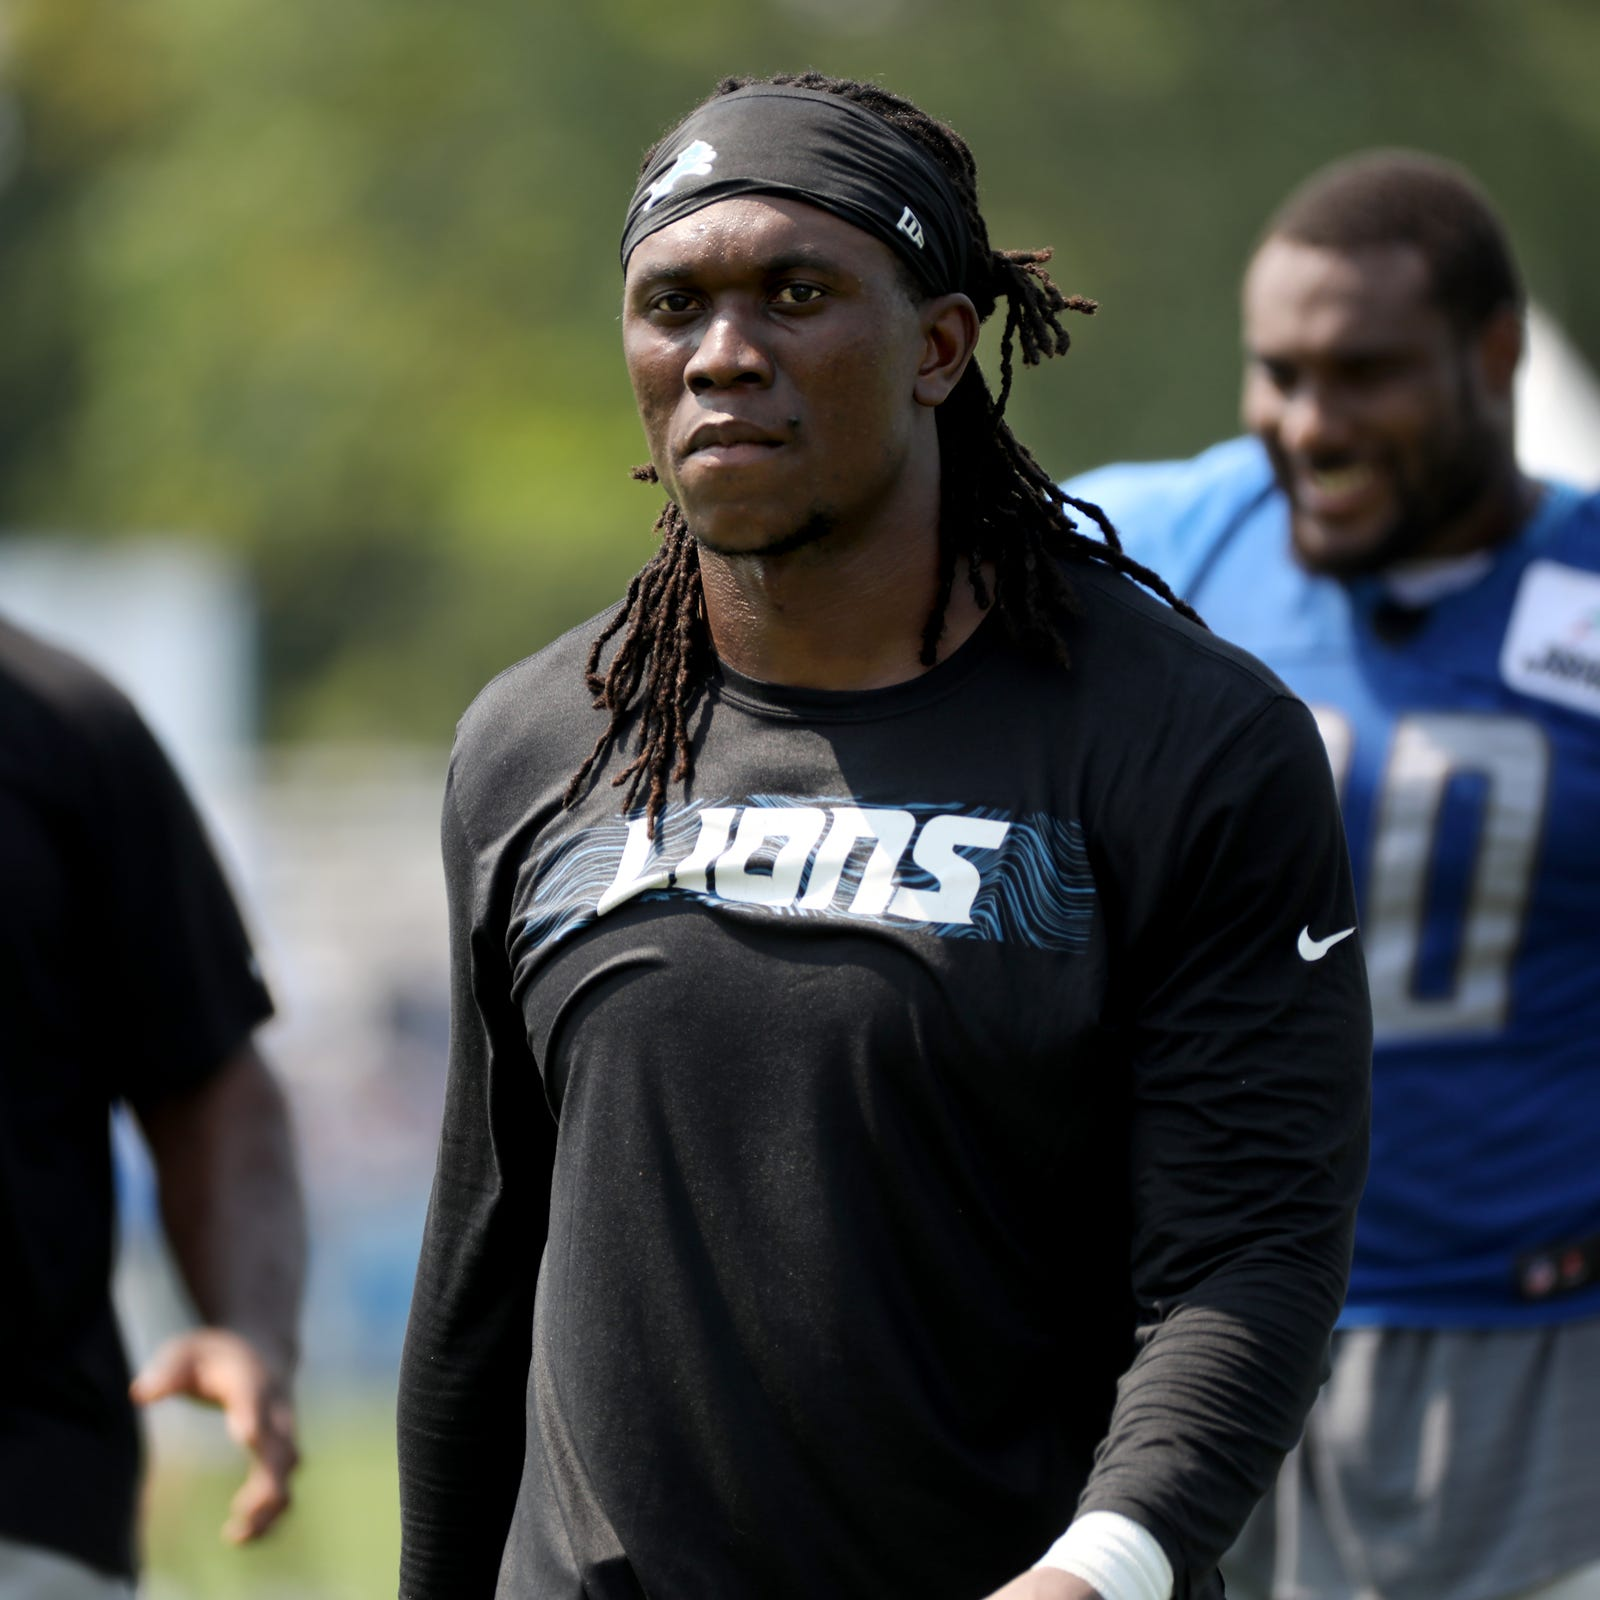 Reports: Former Lions DE Ziggy Ansah to sign with Seattle Seahawks